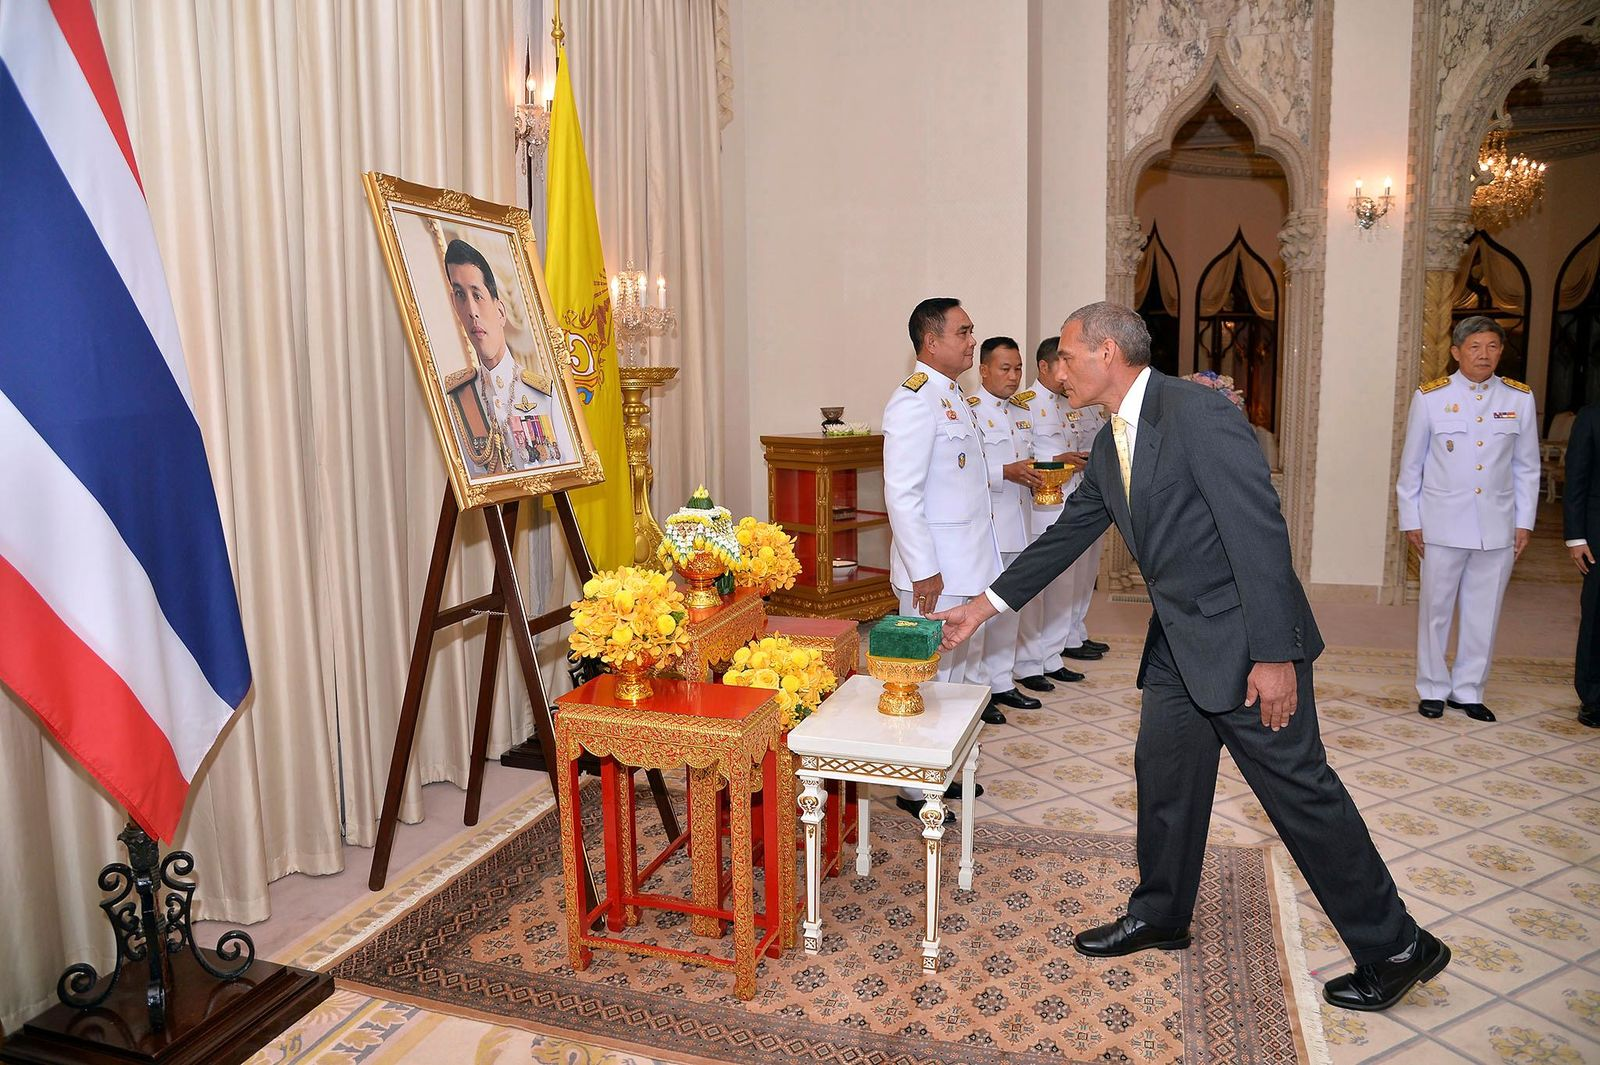 In this photo released by Government Spokesman Office, Craig Challen, an Australian member of the Thai cave rescue team, receives the Member of the Most Admirable Order of the Direkgunabhorn in front of a portrait of Thailand's King Maha Vajiralongkorn Bodindradebayavarangkun during the royal decoration ceremony at the Royal Thai Government House in Bangkok, Thailand, Friday, April 19, 2019. (Government Spokesman Office via AP)